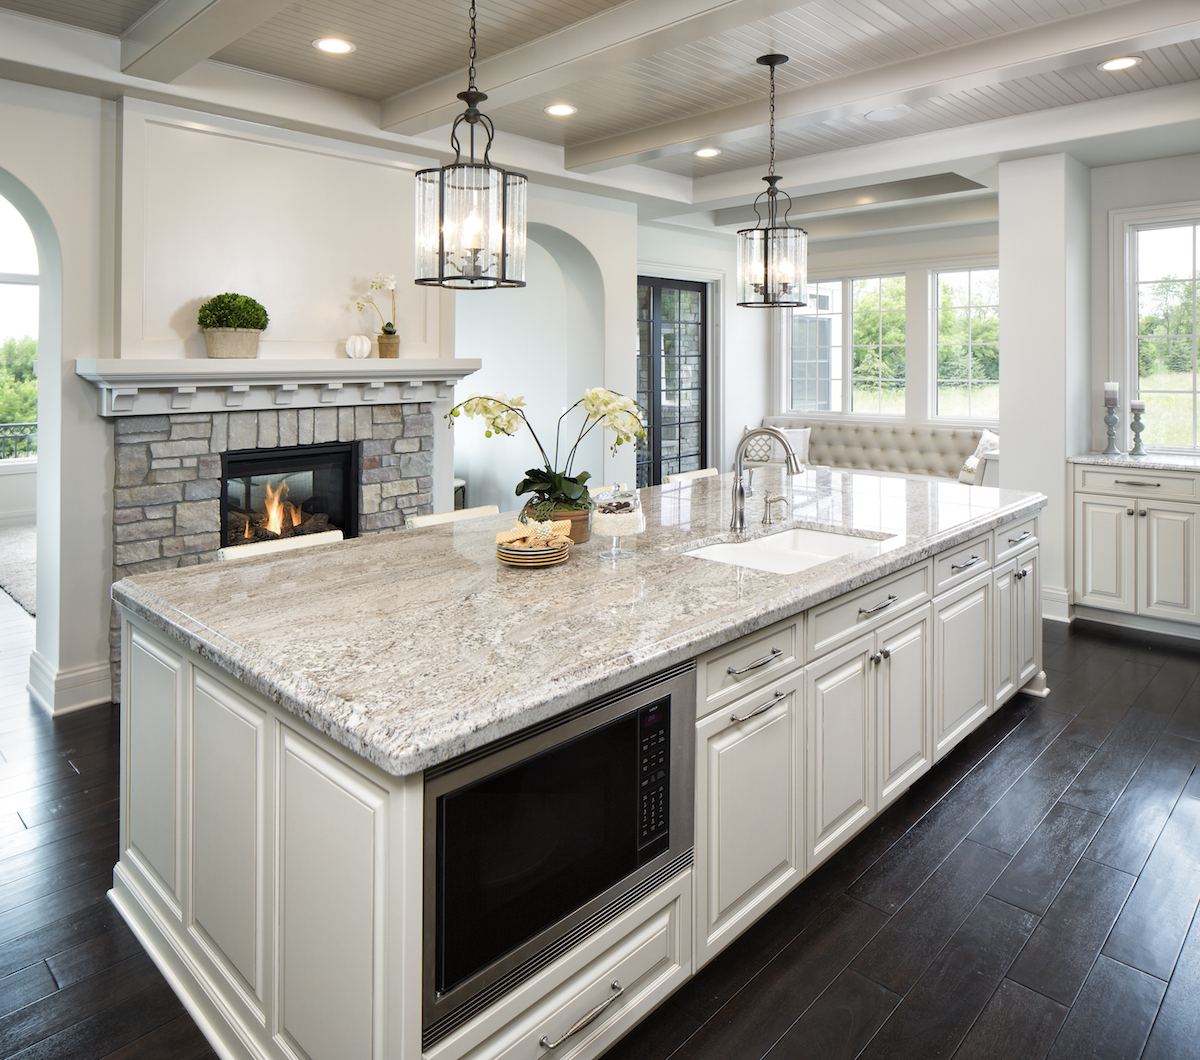 granite kitchens joseph kitchen knives taupe white countertops in c d minneapolis mn